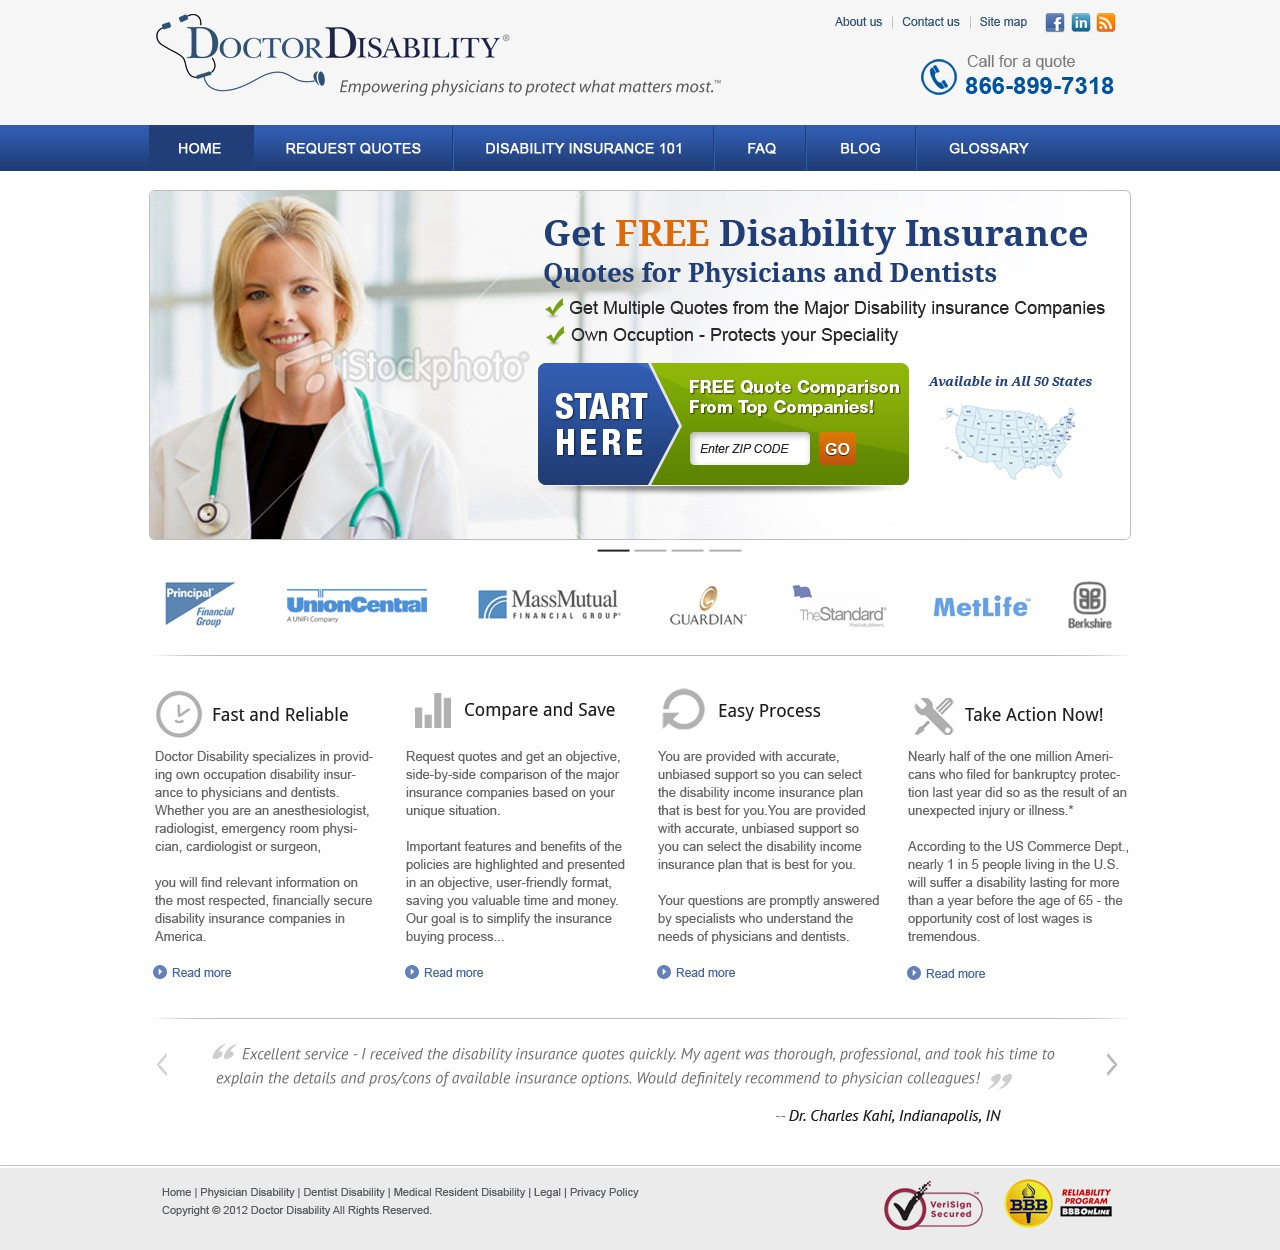 Help Doctor Disability with a new website design